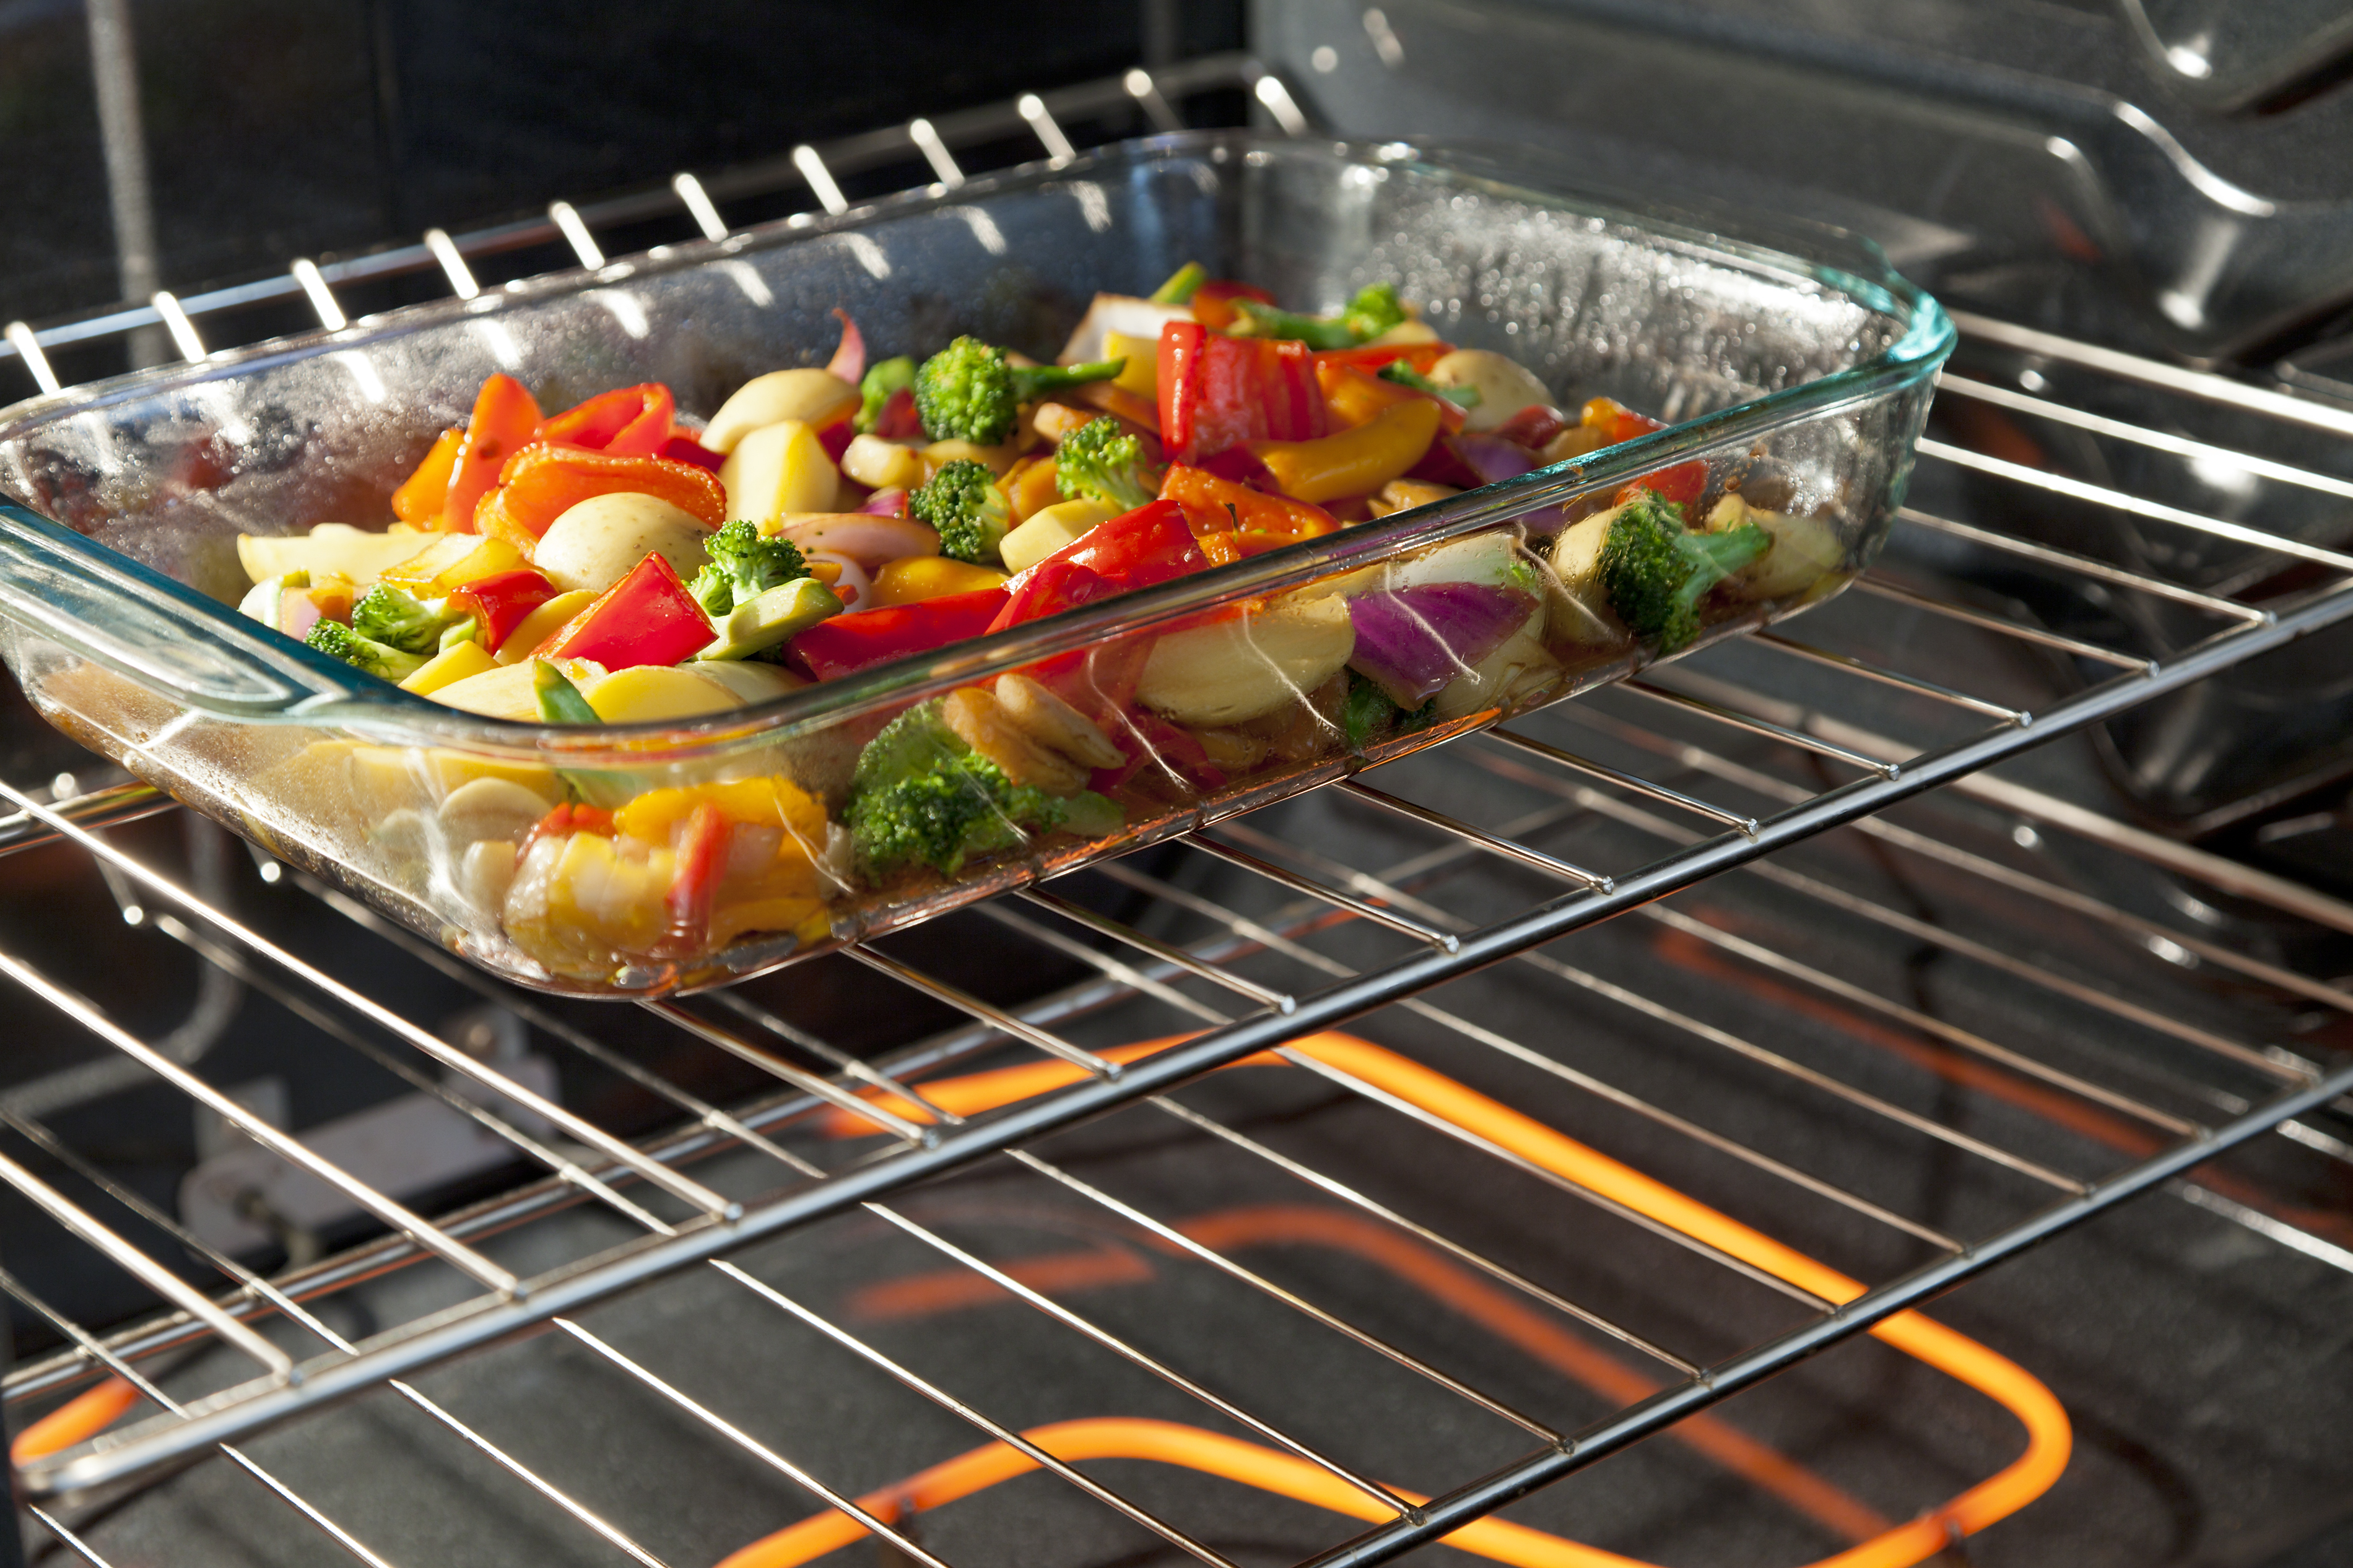 Glass bakeware